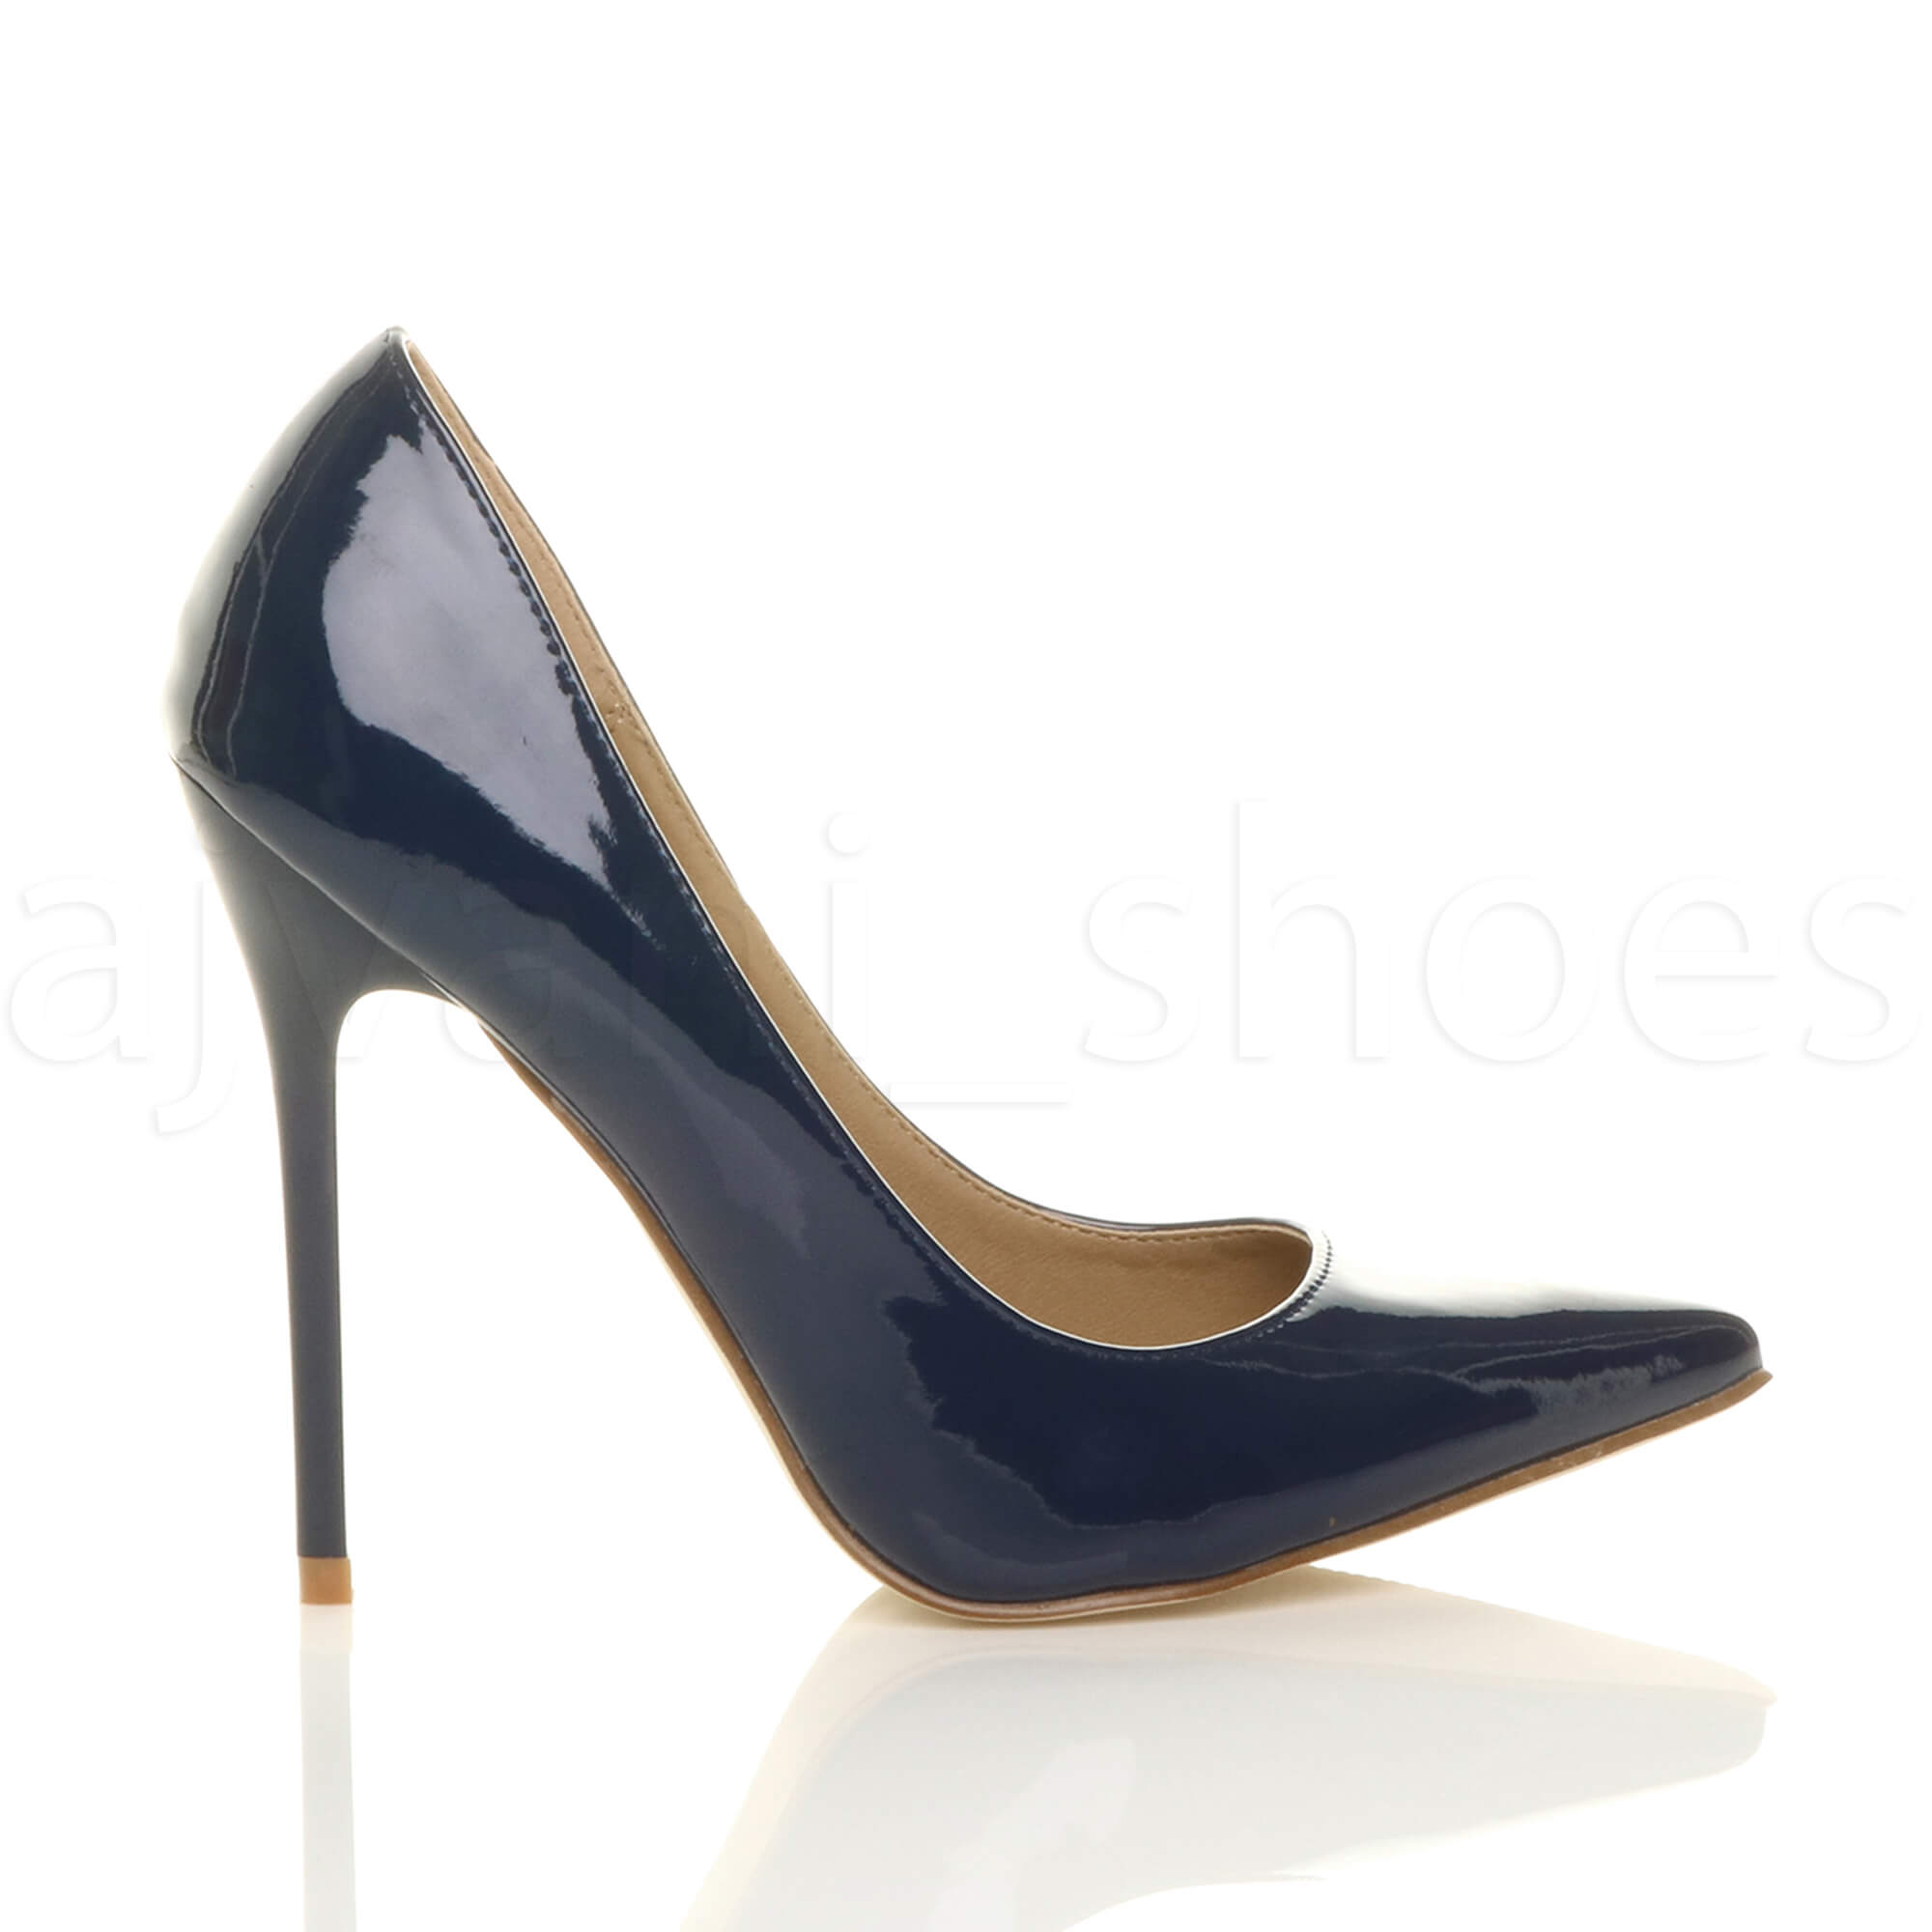 WOMENS-LADIES-HIGH-HEEL-POINTED-CONTRAST-COURT-SMART-PARTY-WORK-SHOES-PUMPS-SIZE thumbnail 97